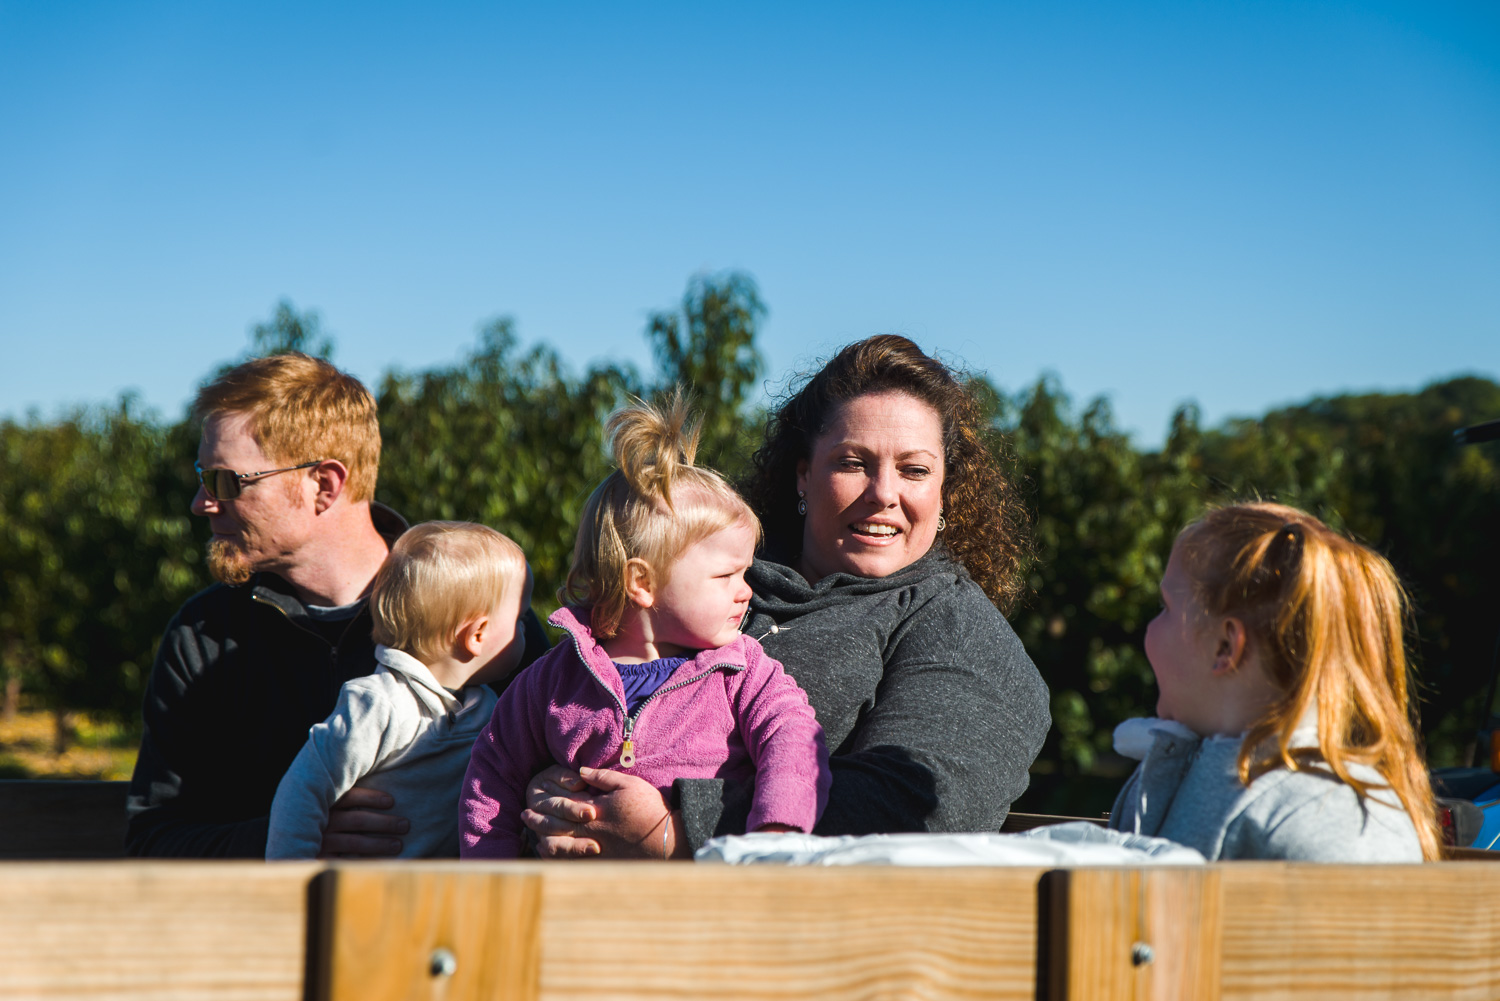 Family on a hay ride.